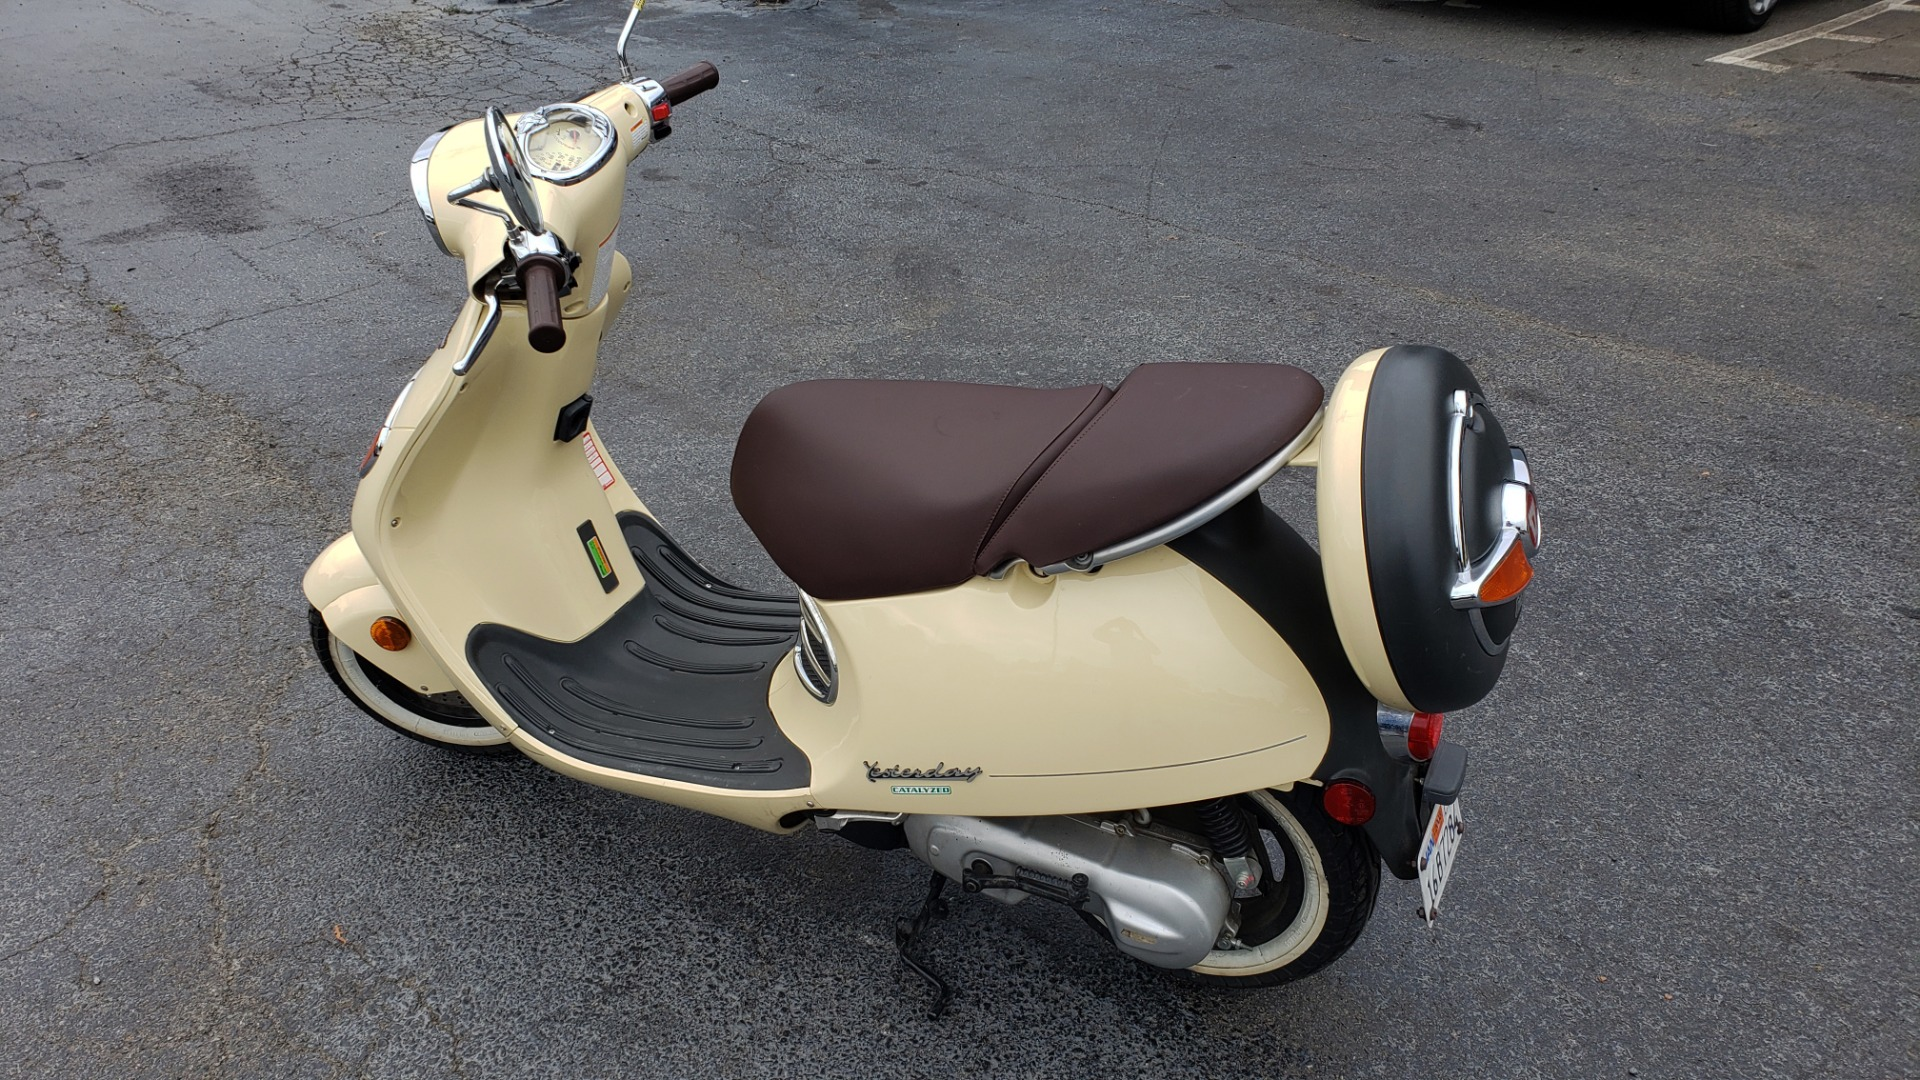 Used 2002 MALAGUTI YESTERDAY 50CC SCOOTER - INCLUDES HELMET for sale $1,799 at Formula Imports in Charlotte NC 28227 4